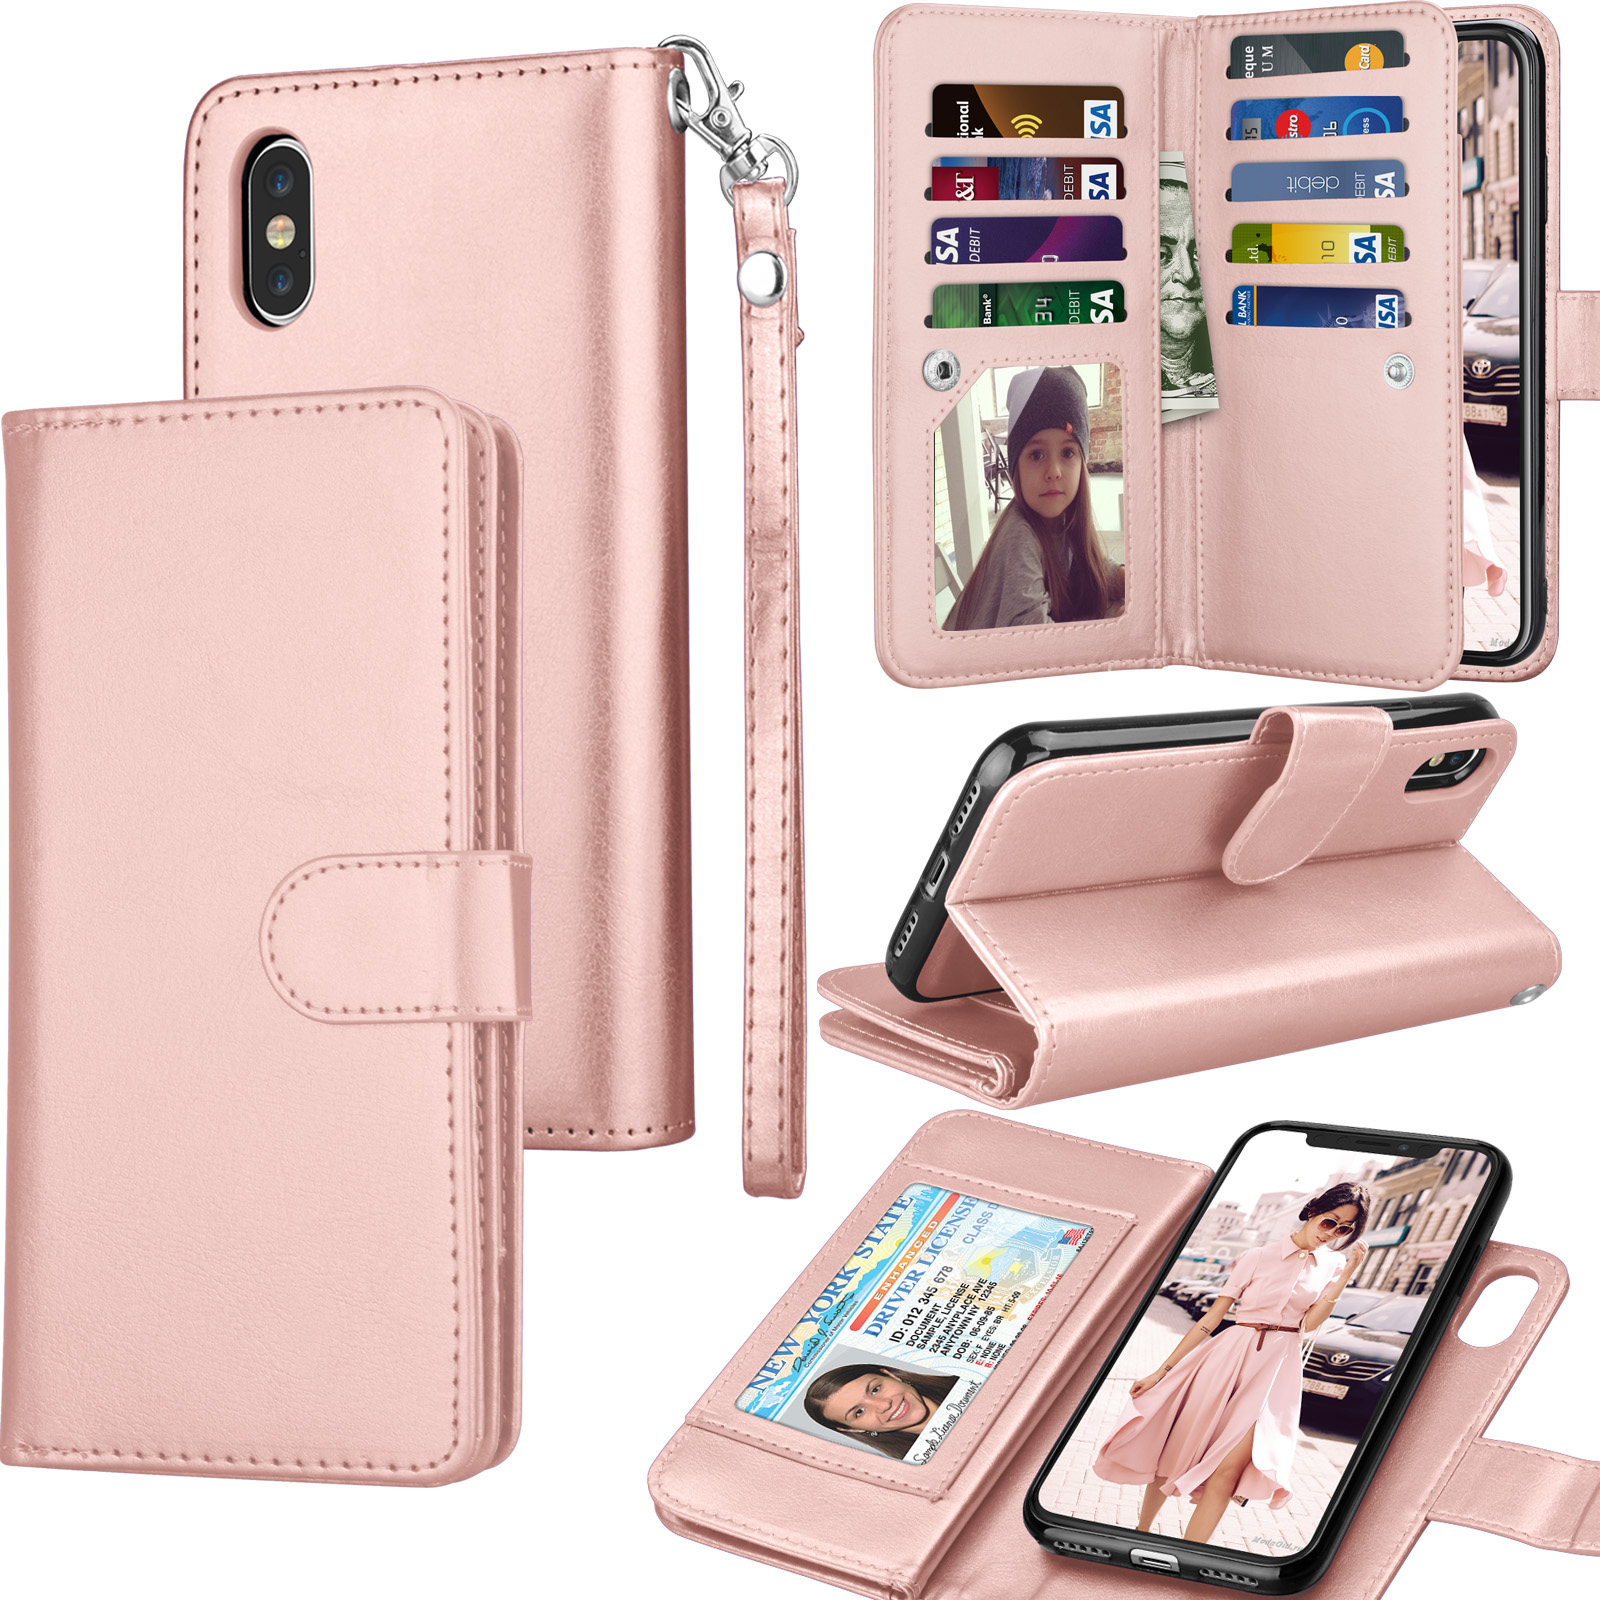 iPhone Xs Max / iPhone XS / iPhone X / iPhone XR Wallet Case Cover, Pu Leather ID Cash Credit Card Slots Holder Carrying Folio Flip Cover [Detachable Magnetic Hard Case] Kickstand